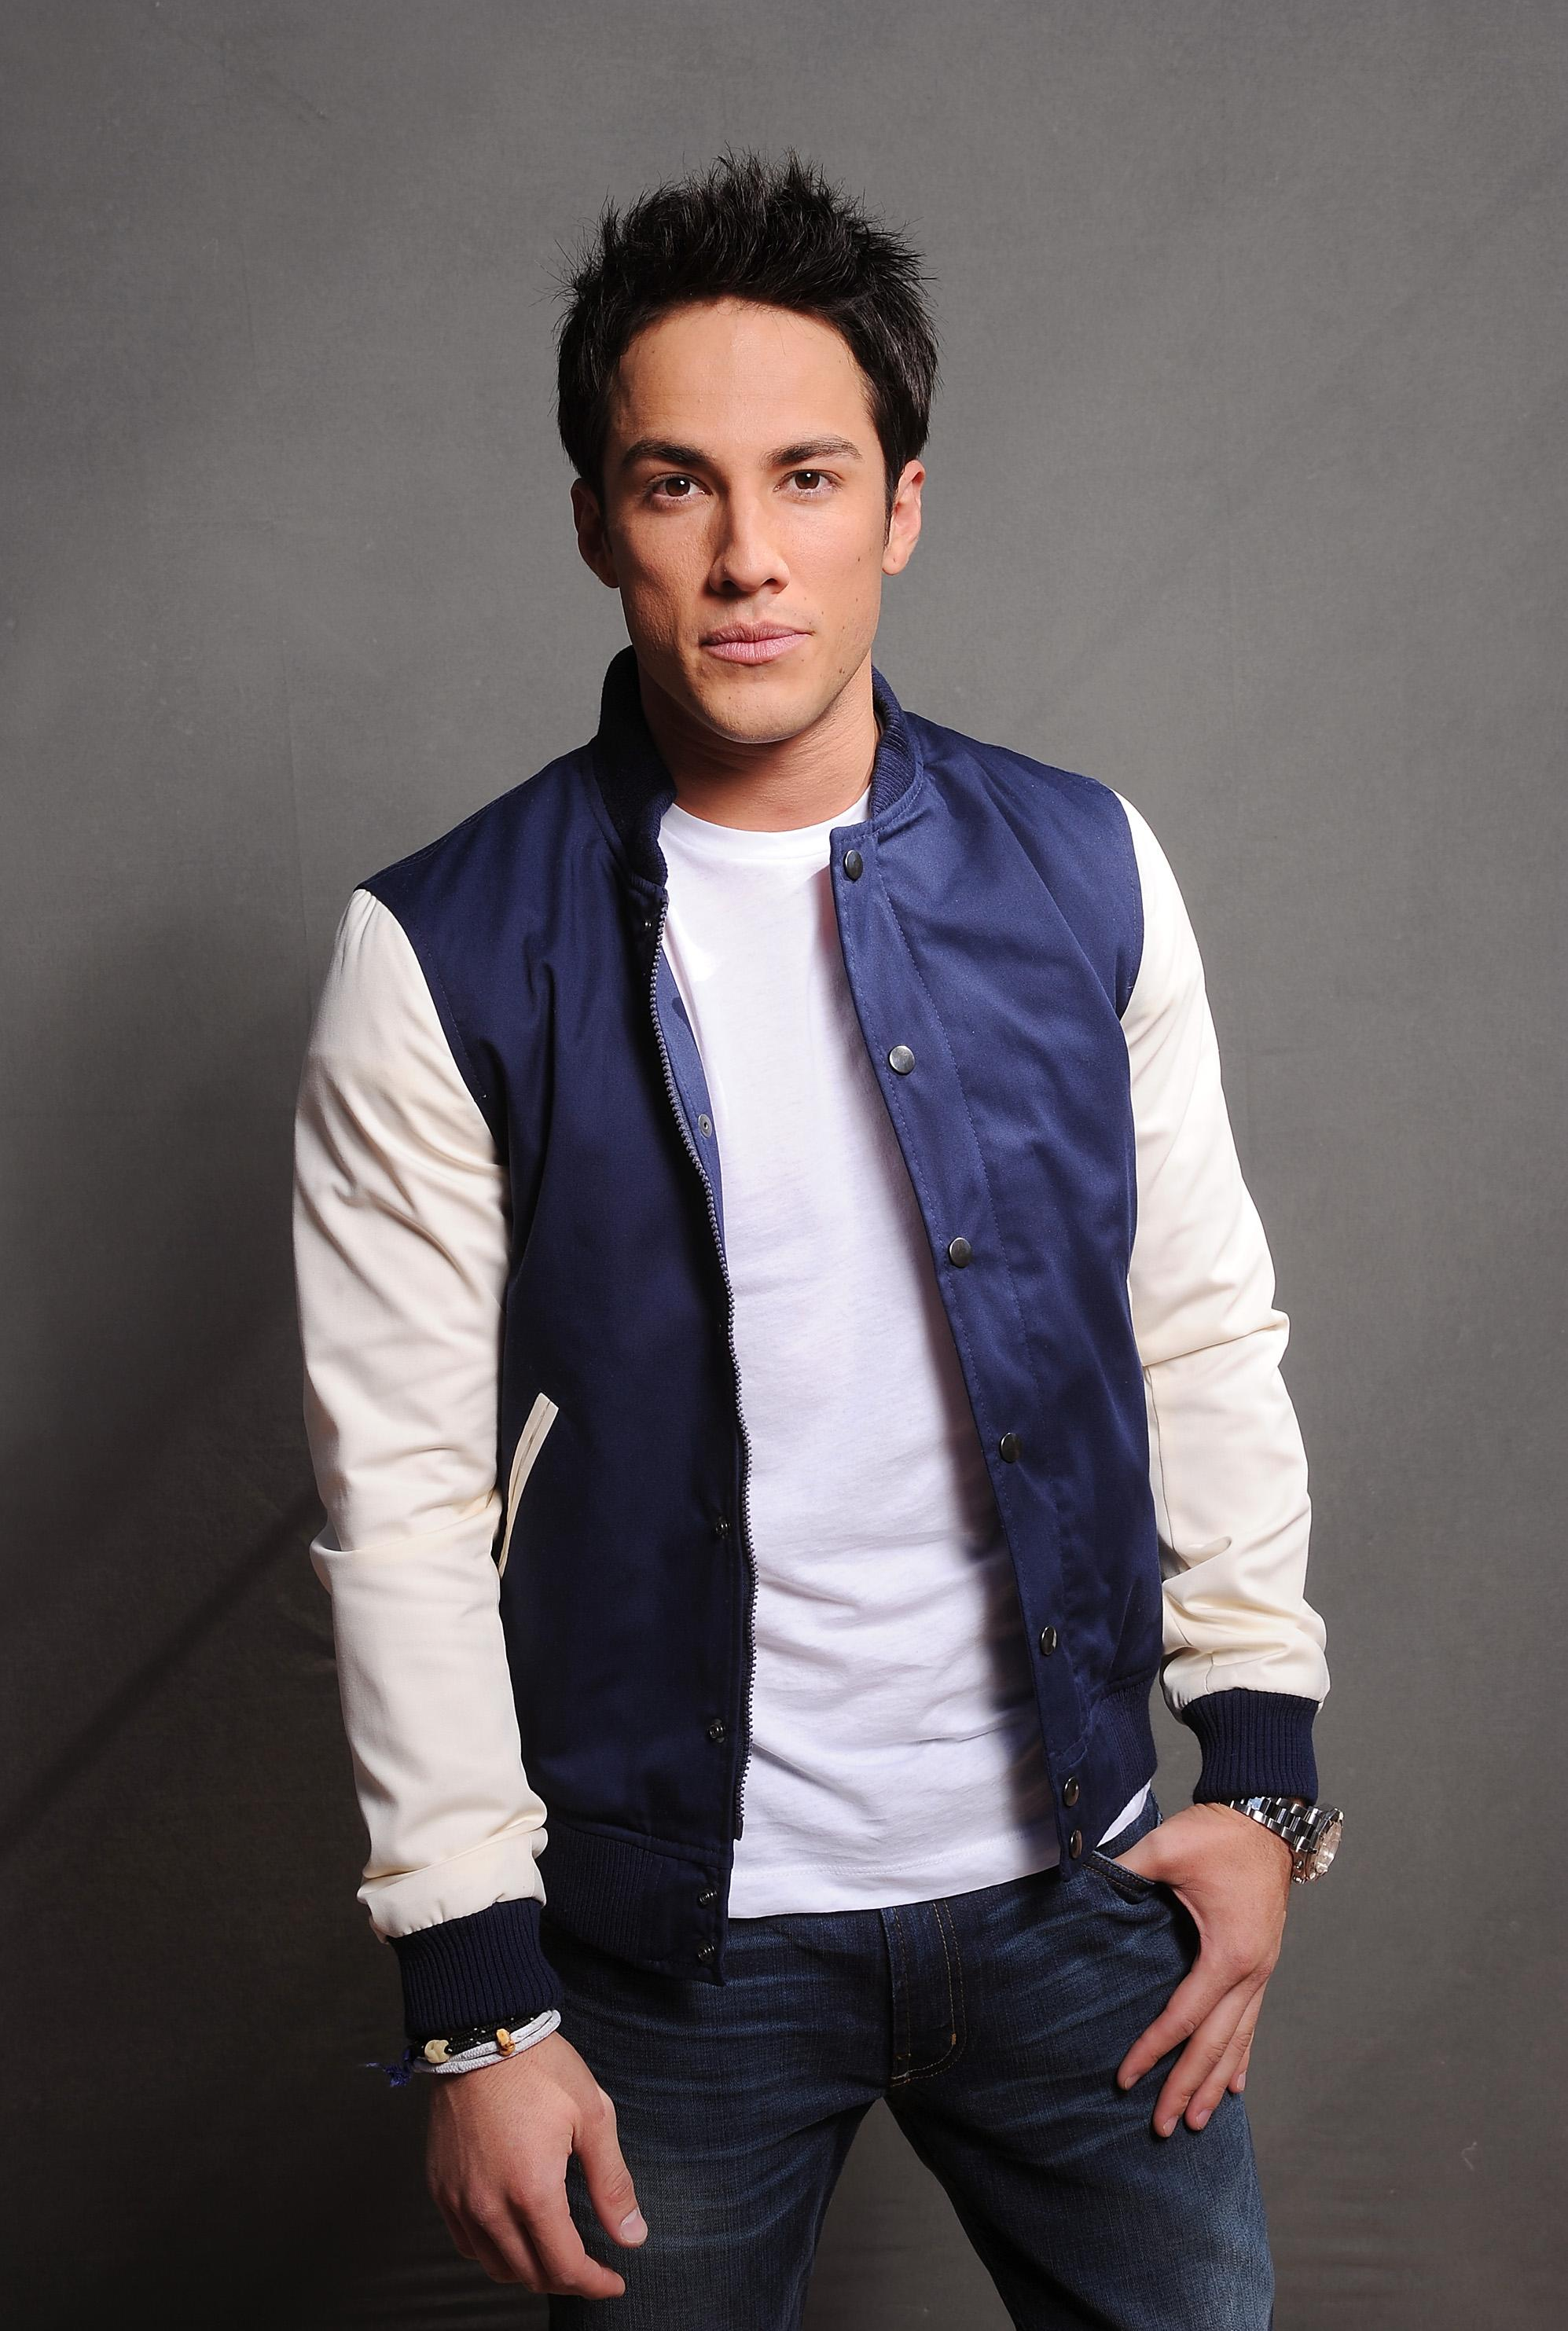 michael trevino imdbmichael trevino instagram, michael trevino gif, michael trevino wife, michael trevino height, michael trevino and nina dobrev, michael trevino png, michael trevino girlfriend, michael trevino gif hunt, michael trevino ethnicelebs, michael trevino top, michael trevino glasses, michael trevino imdb, michael trevino vampire diaries, michael trevino tumblr, michael trevino dating